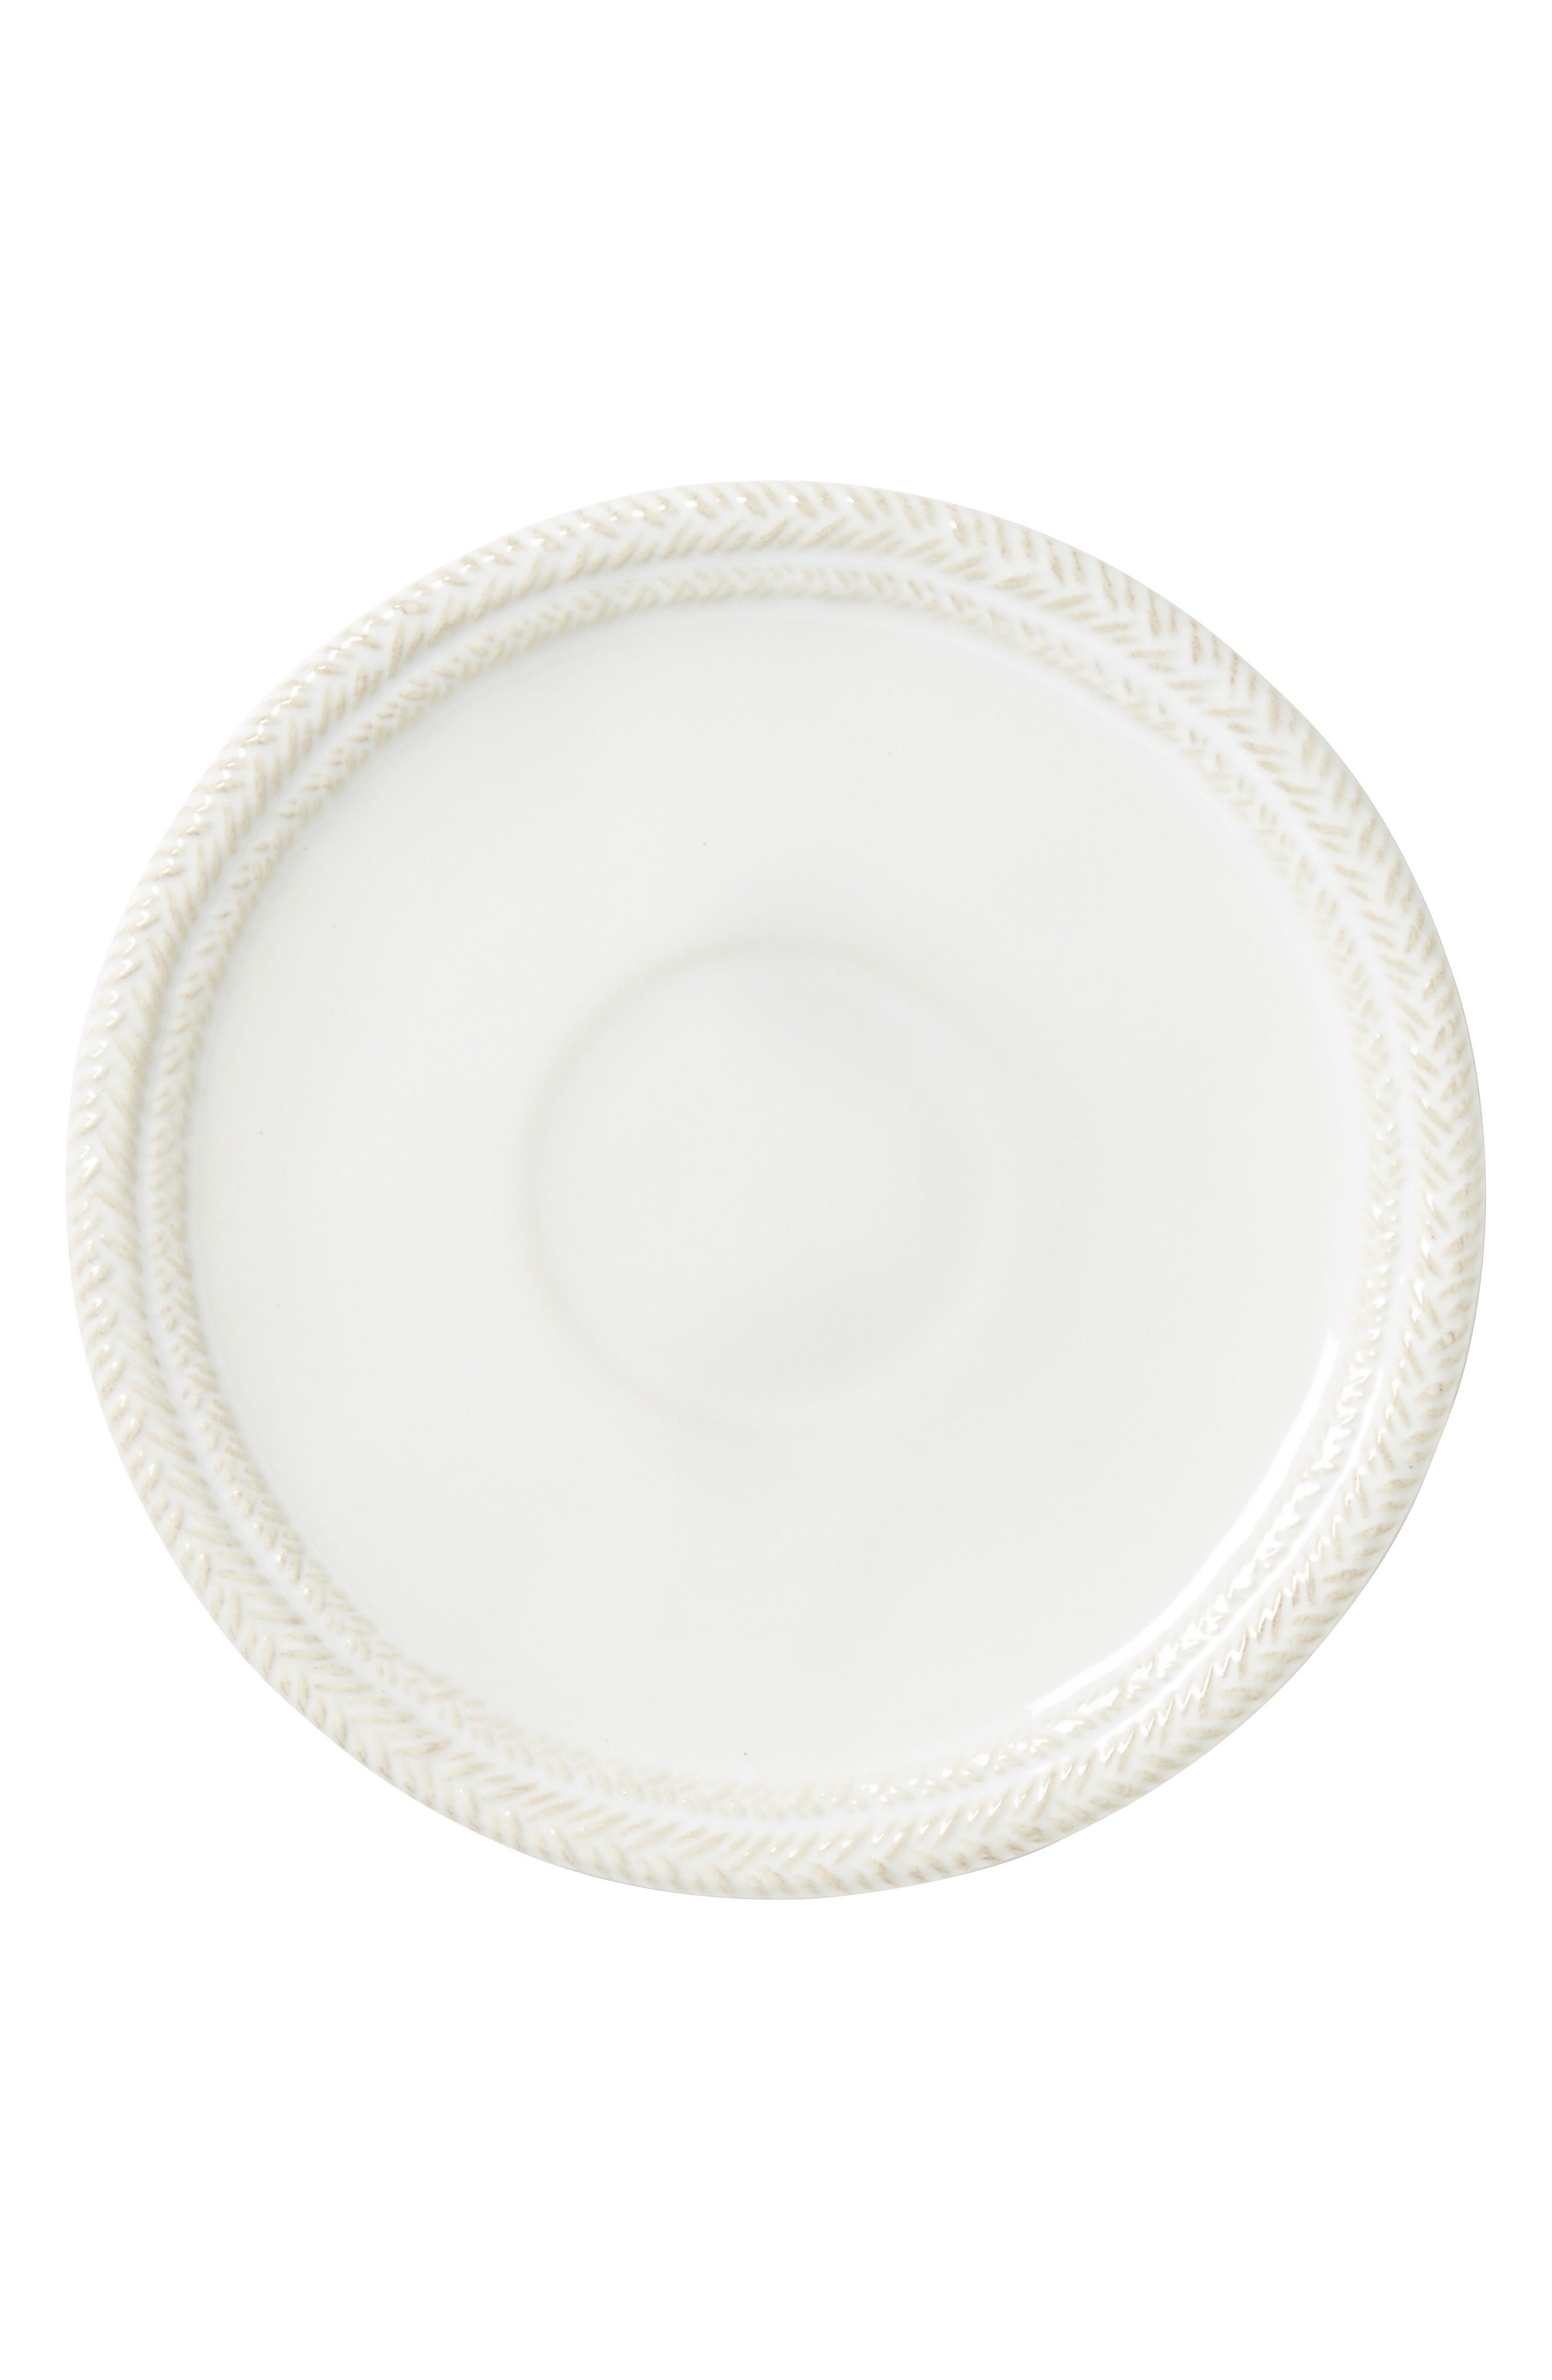 Alternate Image 1 Selected - Juliska Le Panier Whitewash Saucer